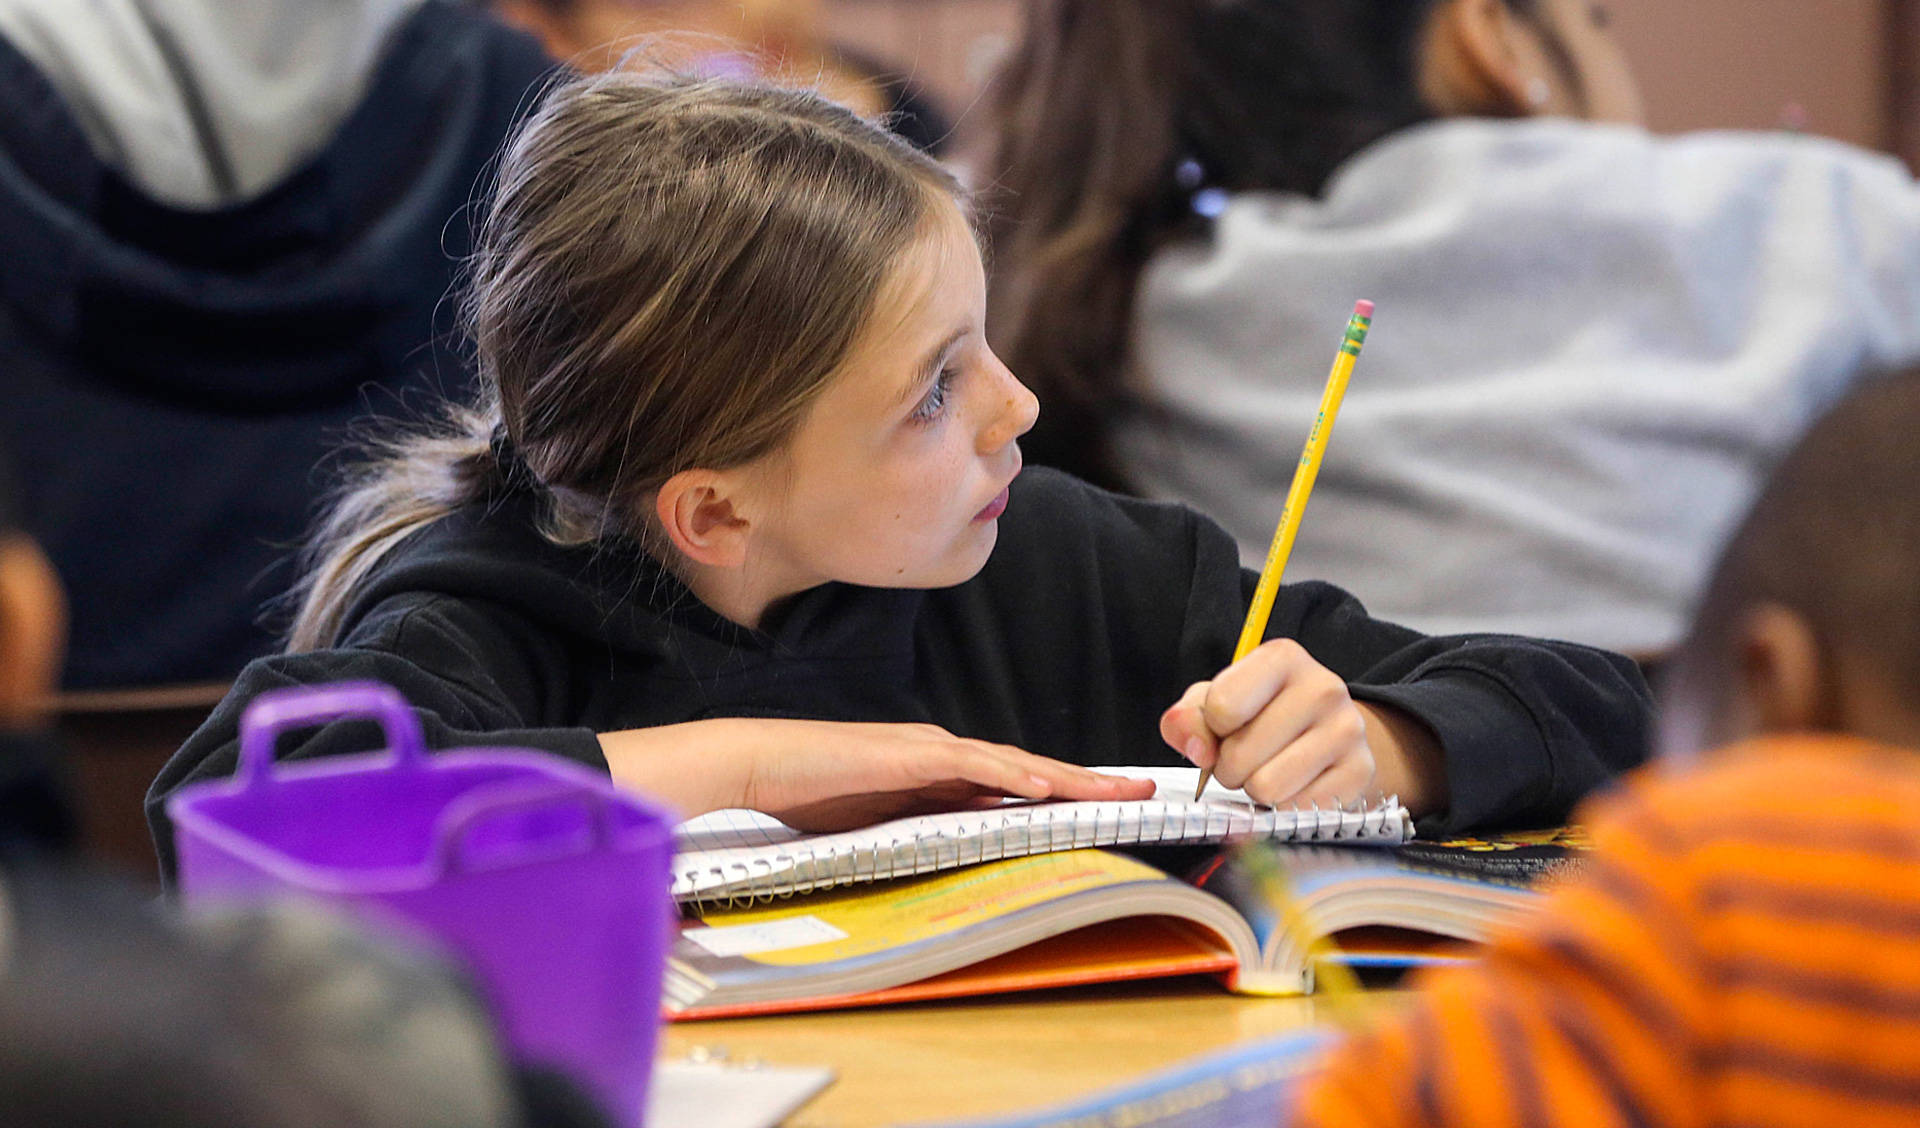 A Greenfield Union student takes notes during class at Kendrick Elementary School in Bakersfield. The district is one of 15 CALmatters studied to understand how well the state's new school funding formula is working. Henry Barrios/The Californian